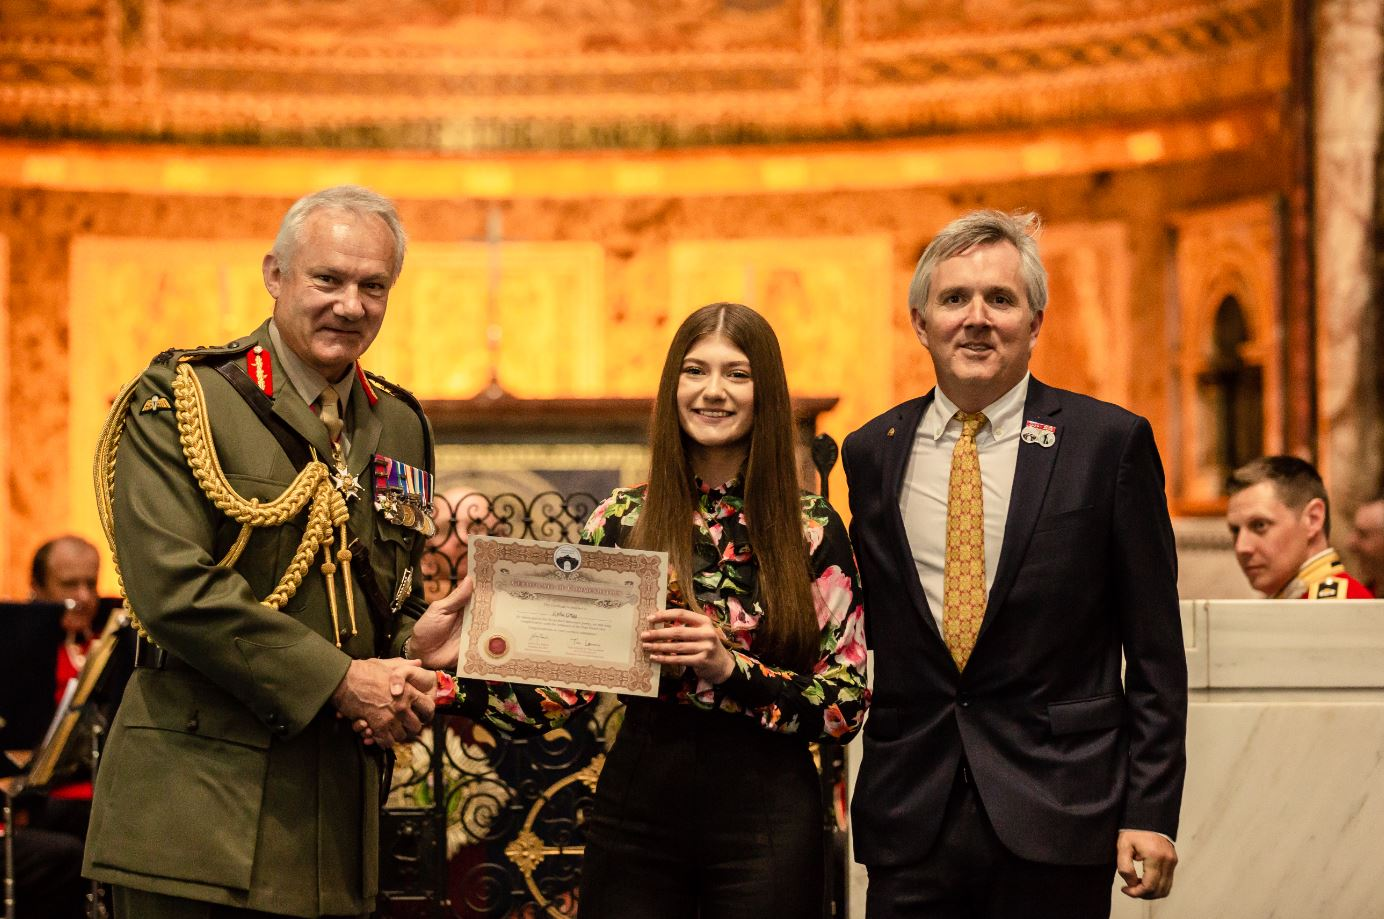 Lydia collected her certificate at the 2017/18 Awards Ceremony from General Sir Gordon Messenger, Vice Chief of Defence Staff, and Jono Hart of Dave Stewart Entertainment